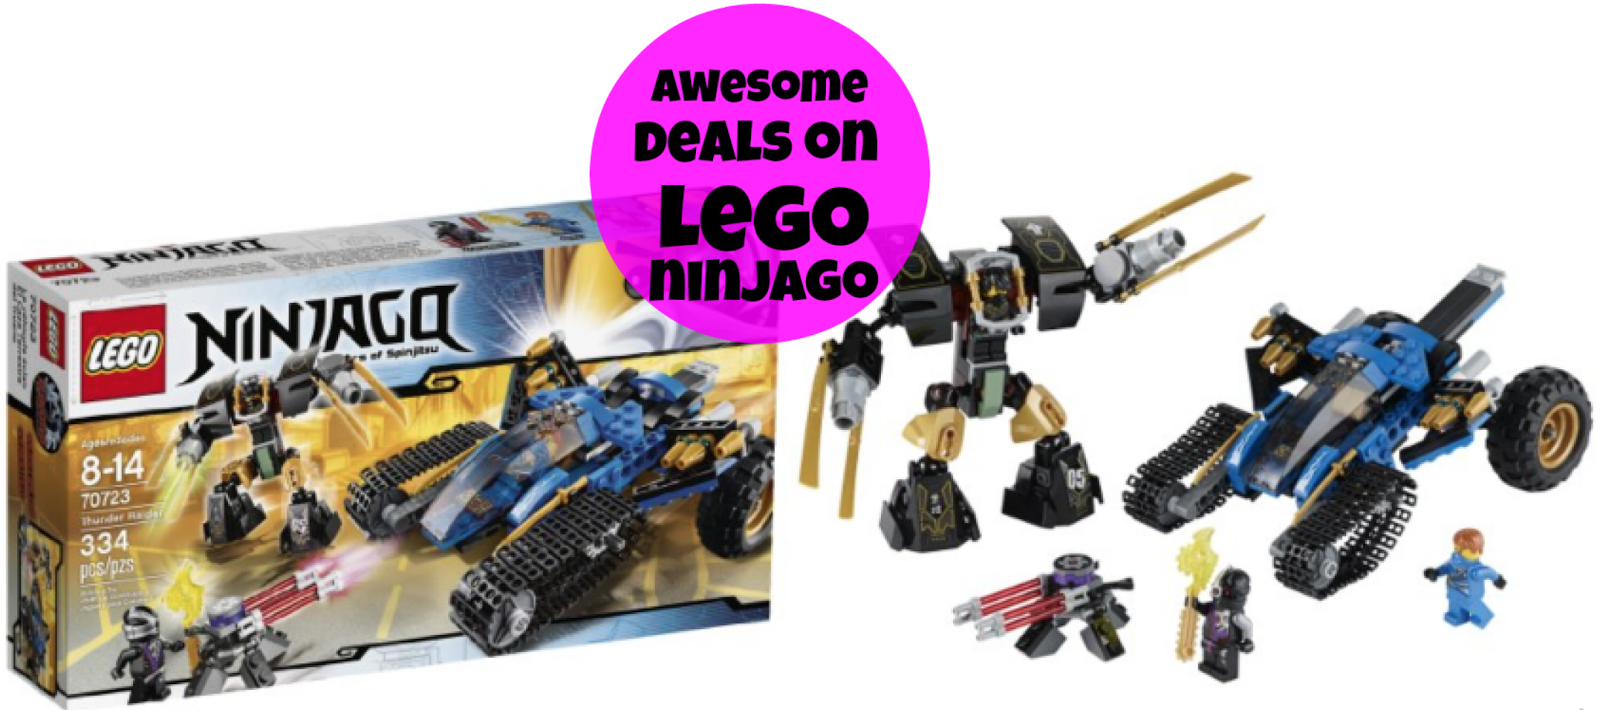 http://www.thebinderladies.com/2014/10/amazon-awesome-deals-on-lego-ninjago.html